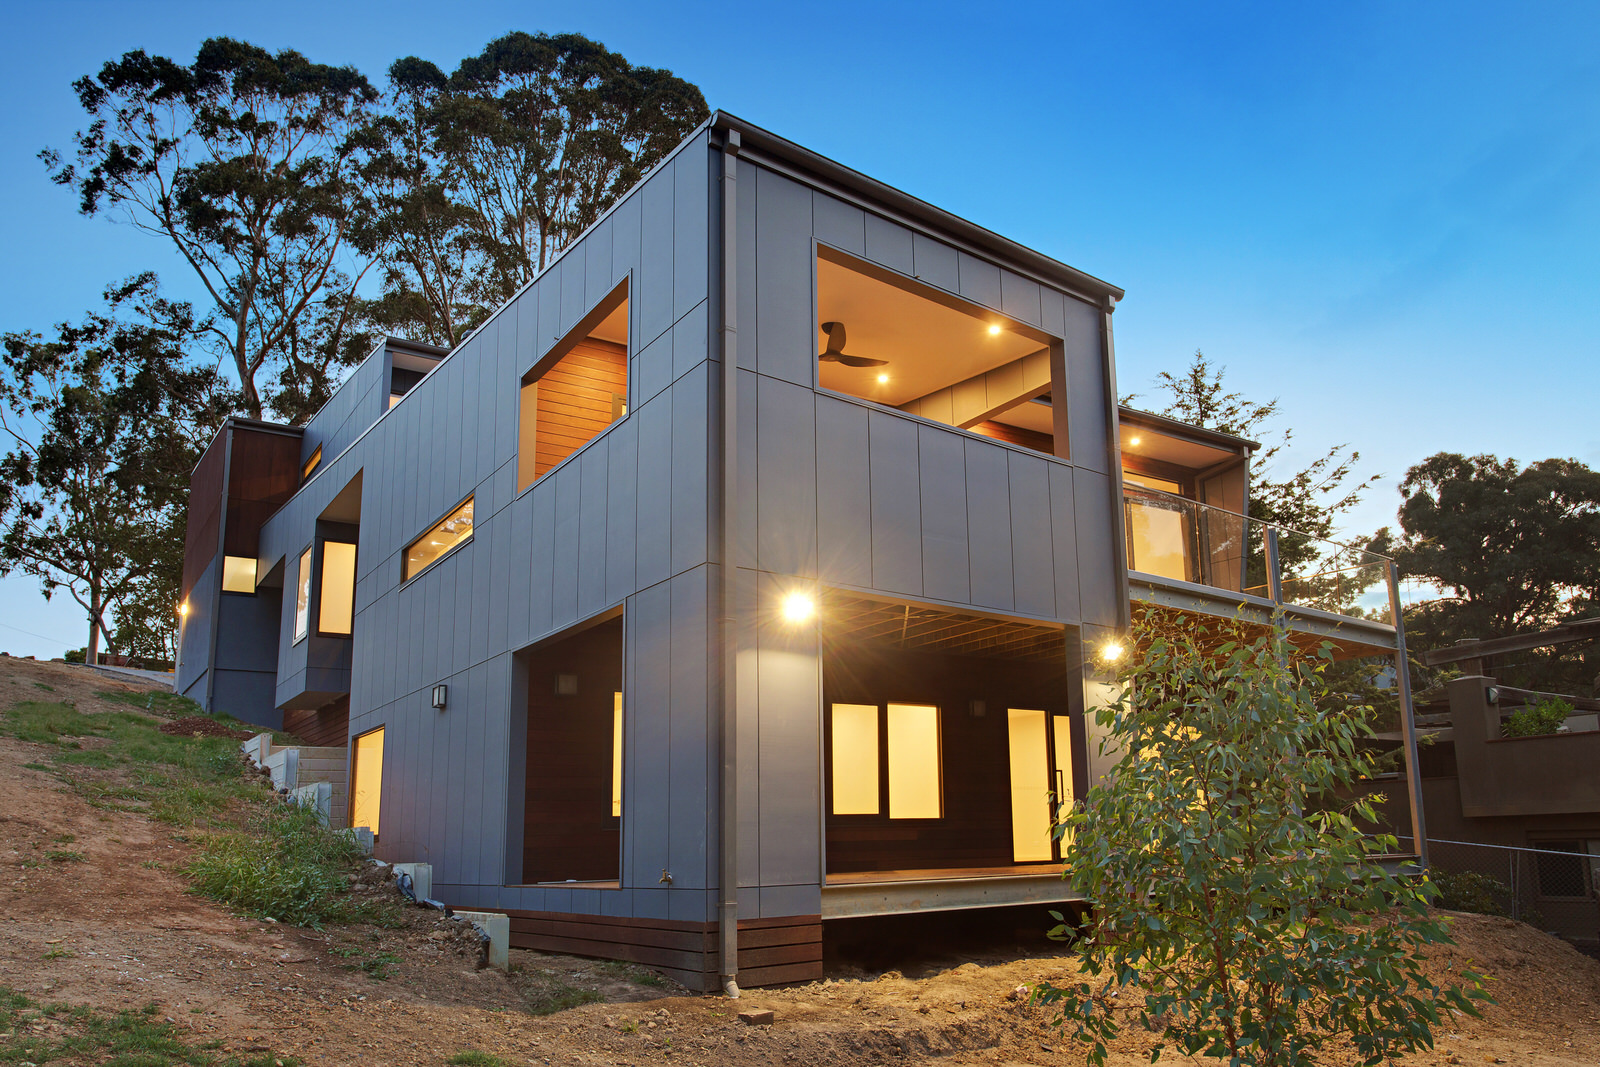 Alfresco living, amongst the treetops, on the banks of the Yarra River - Design: Archestral DesignsContruction & PM: Matclair